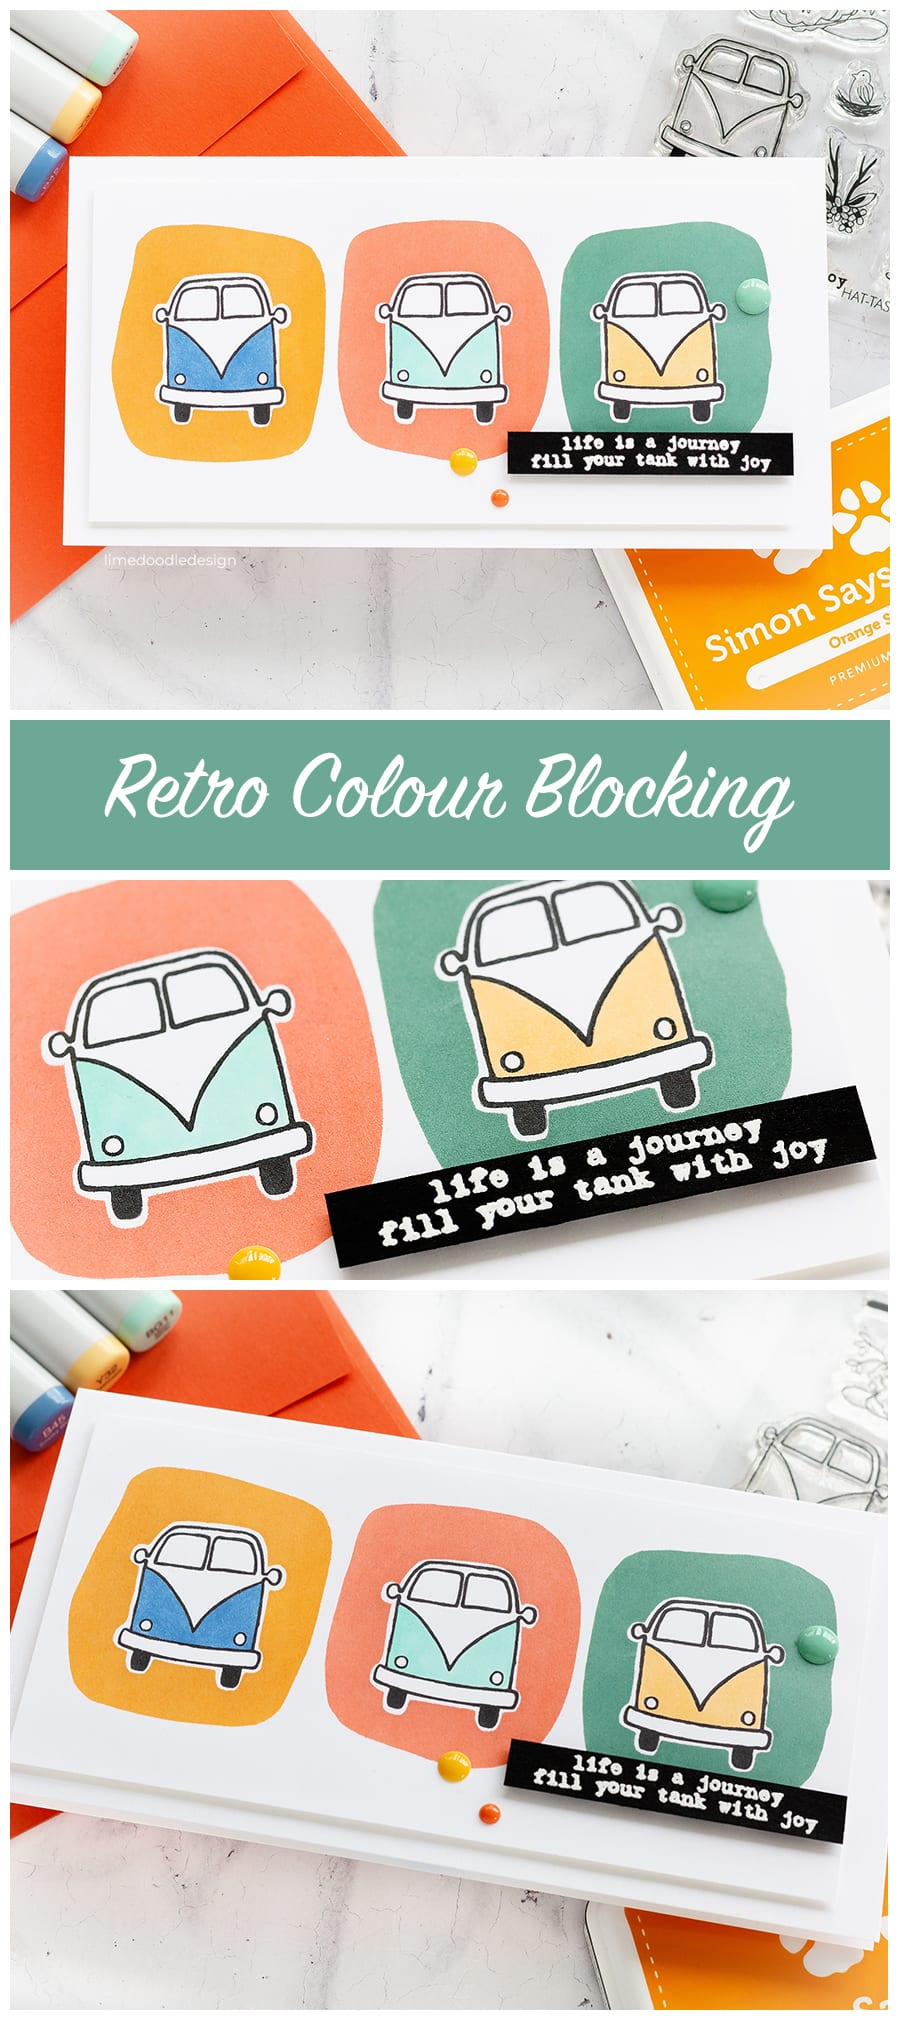 Retro colour blocking handmade cards by Debby Hughes. Find out more here: https://limedoodledesign.com/2018/07/retro-colour-blocking/